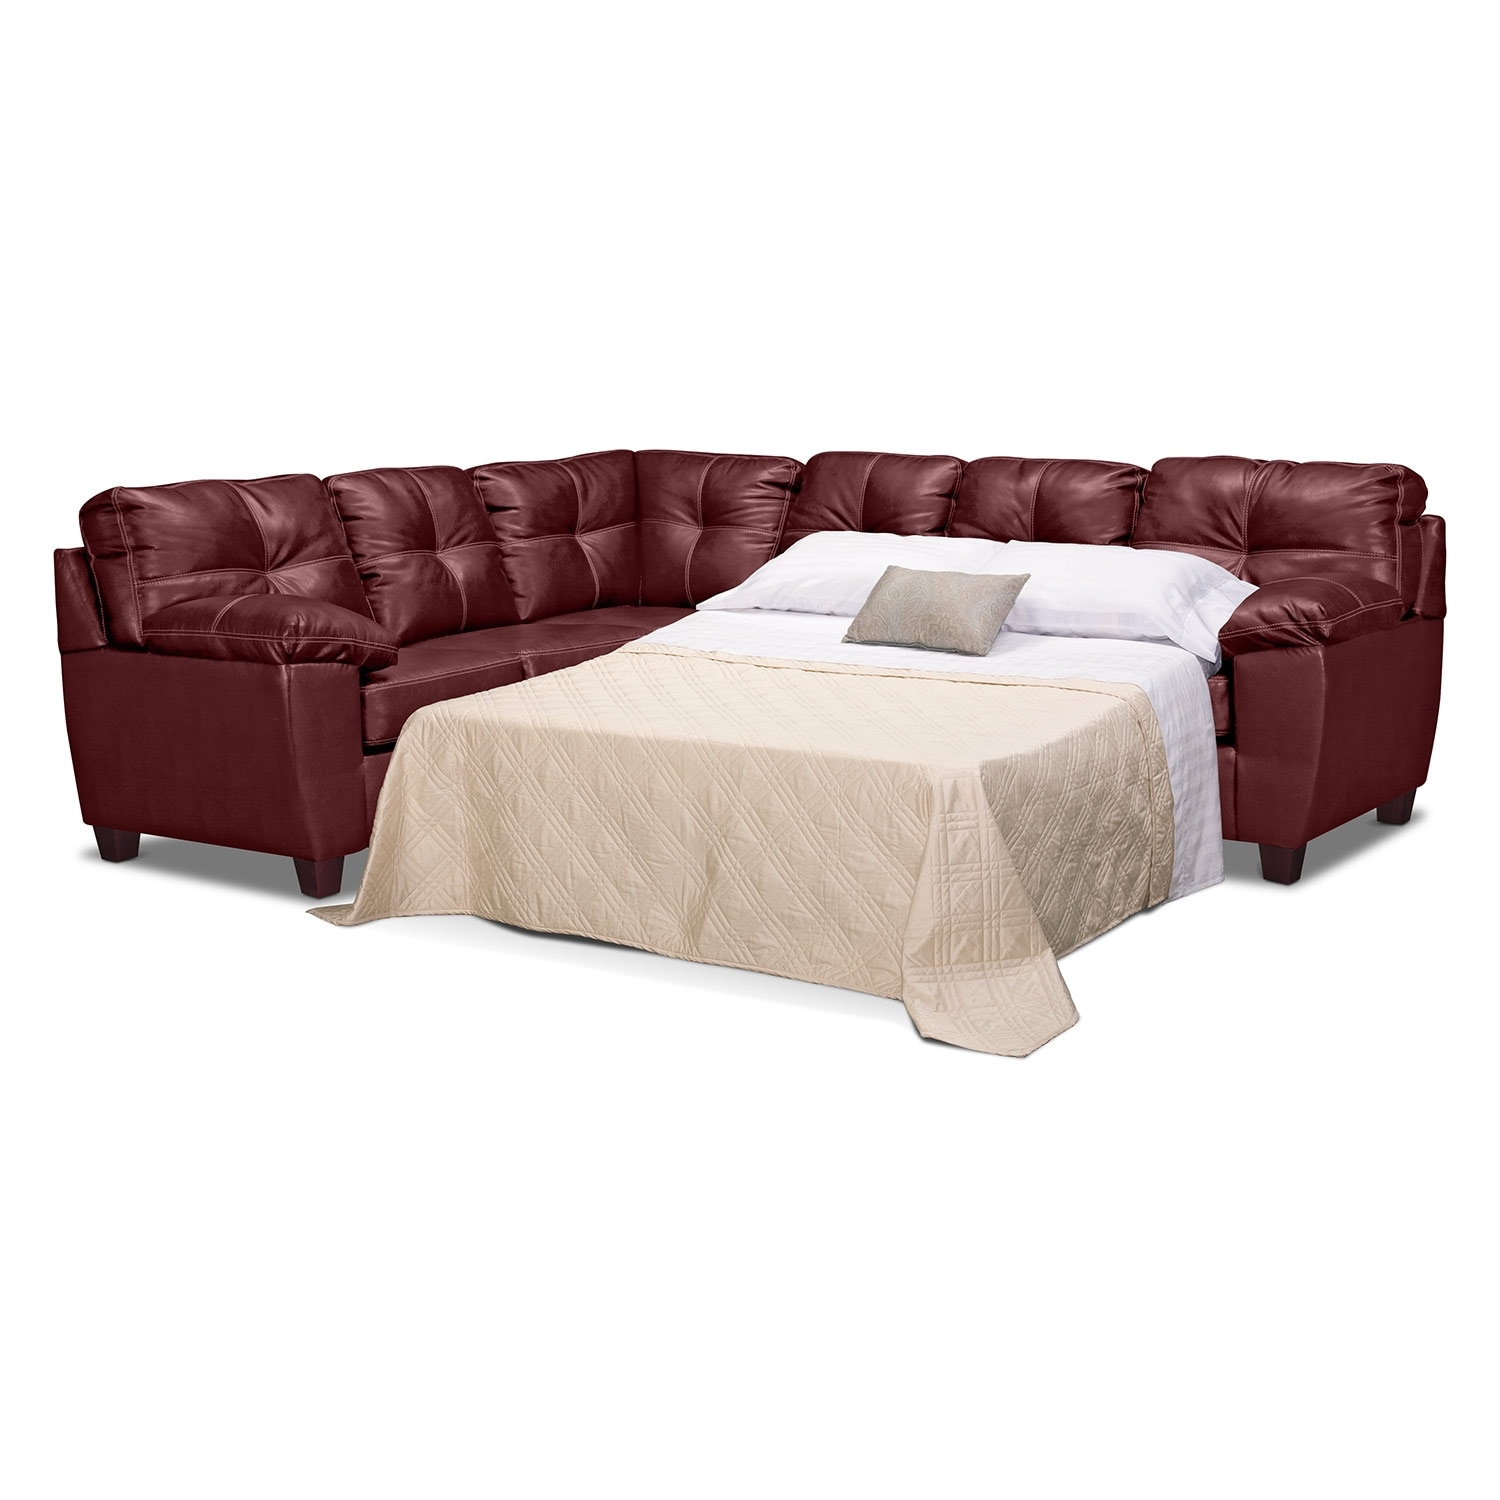 Sofa Sectional Sleeper Fabio Sectional Sofa Sleeper With Storage Creative Furniture Coaster